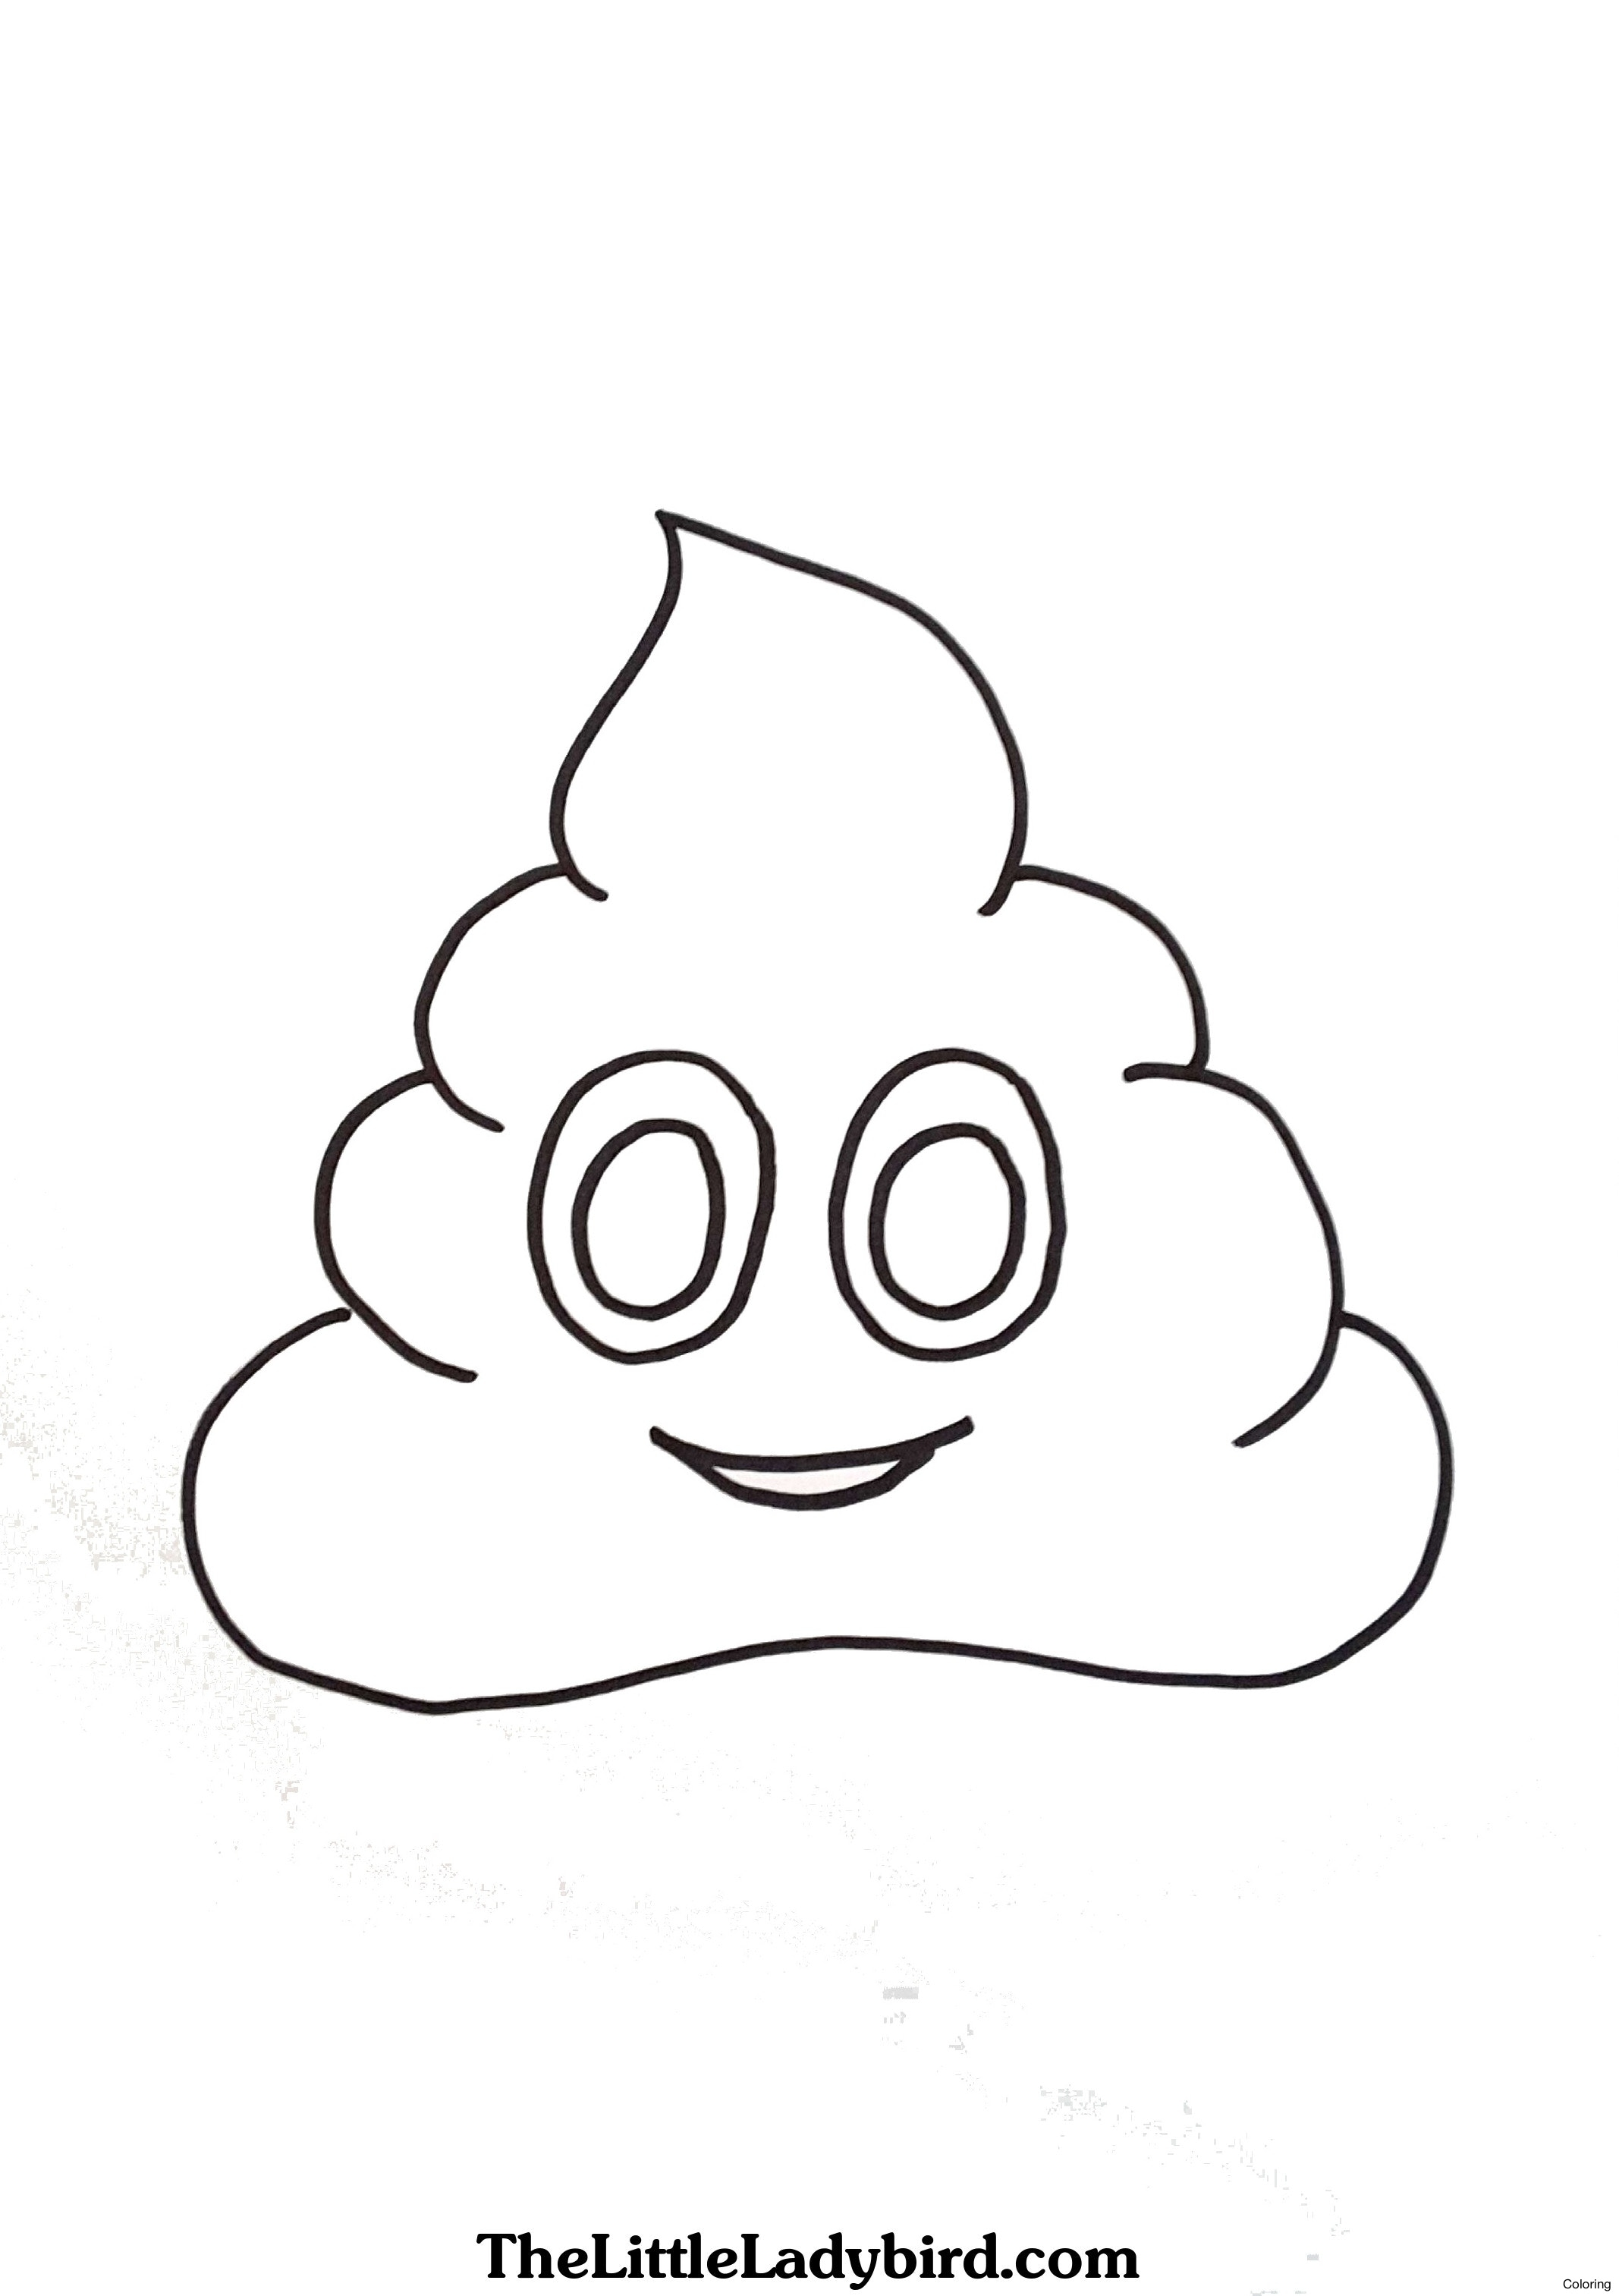 2134x3026 Emoji Poop Emojis Coloring Pages Page All Download